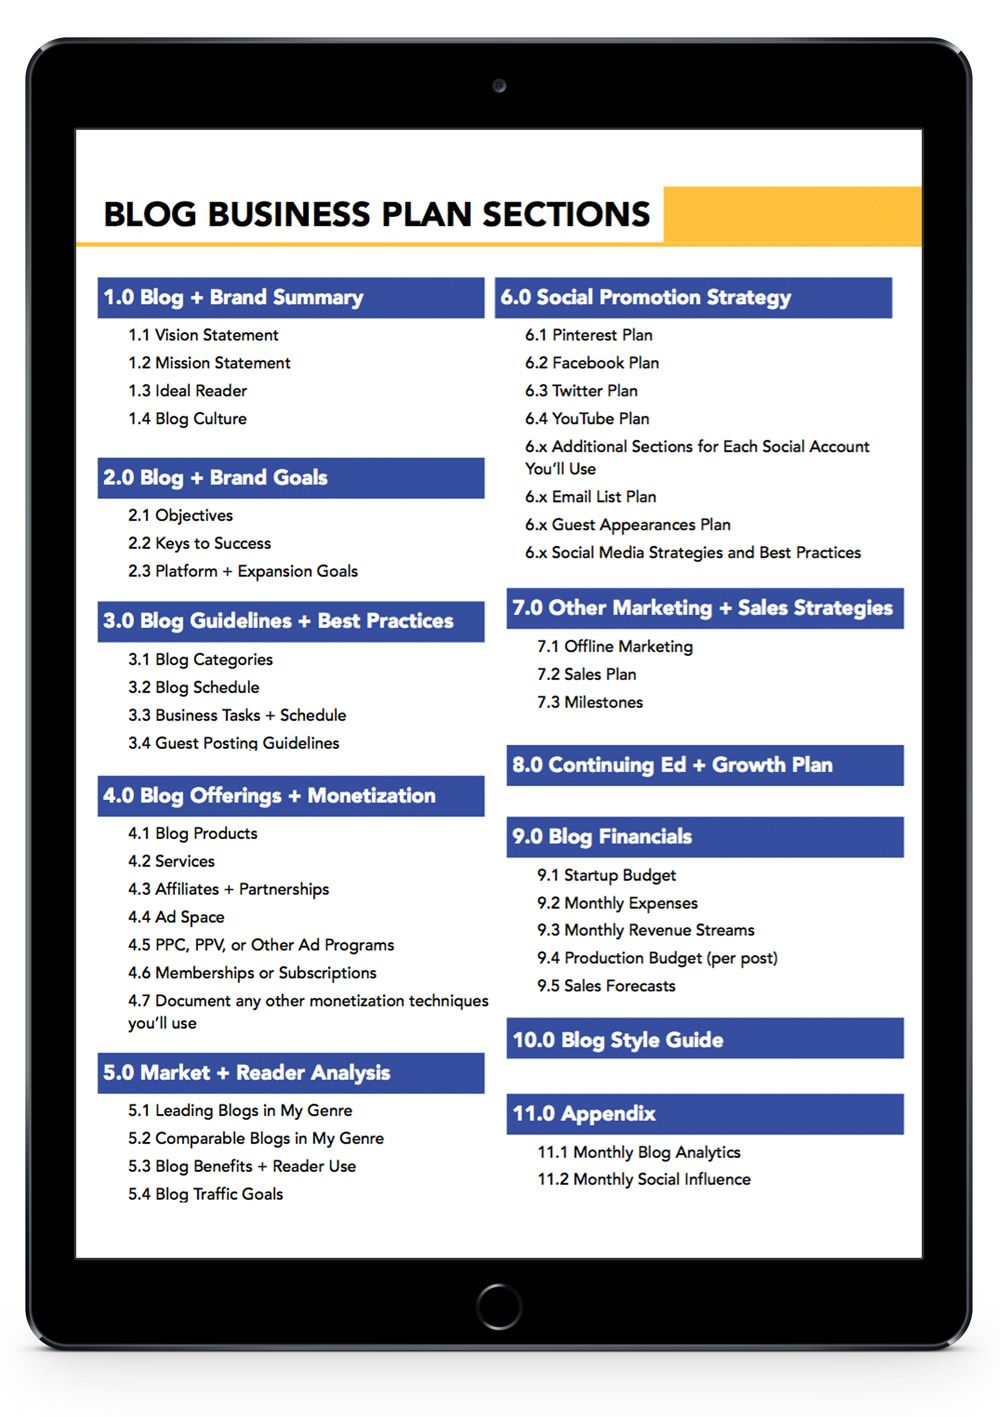 How to write a blog business plan the guide for champions blog business plan the ultimate guide template and workbook on how to create a business plan for your blog wajeb Images